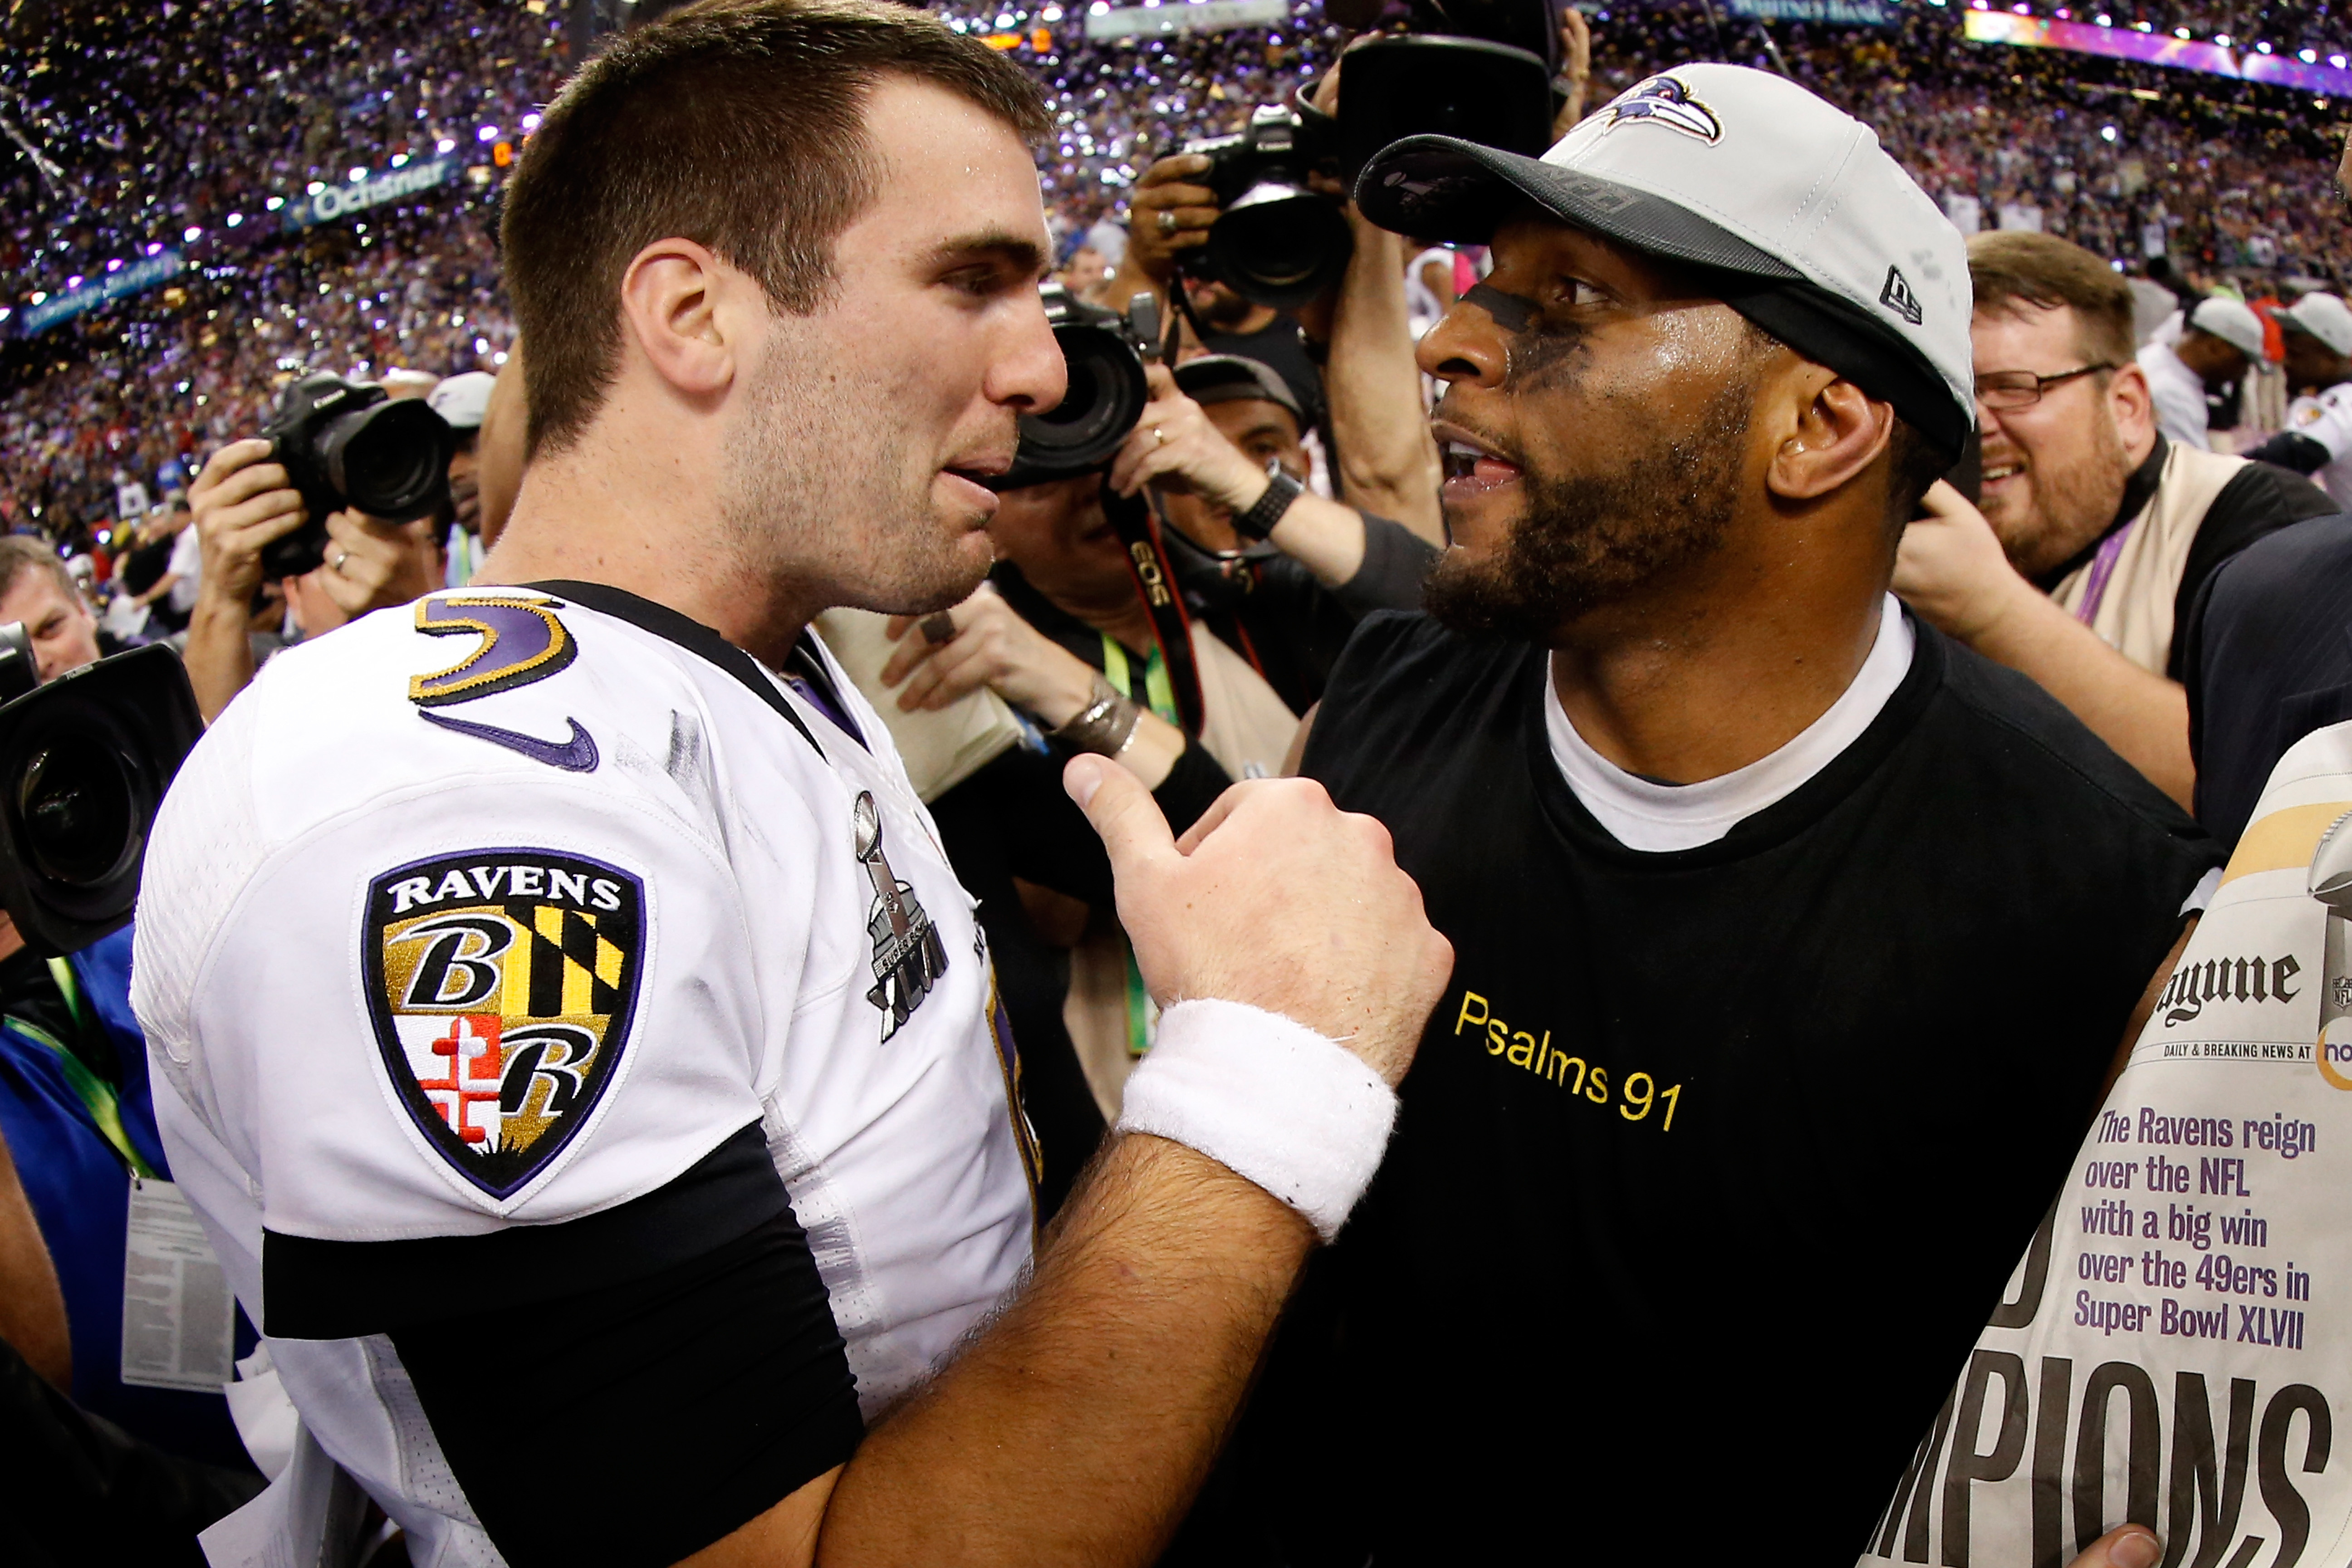 91086c54 Super Bowl 2013: Ravens withstand 49ers rally and power outage ...